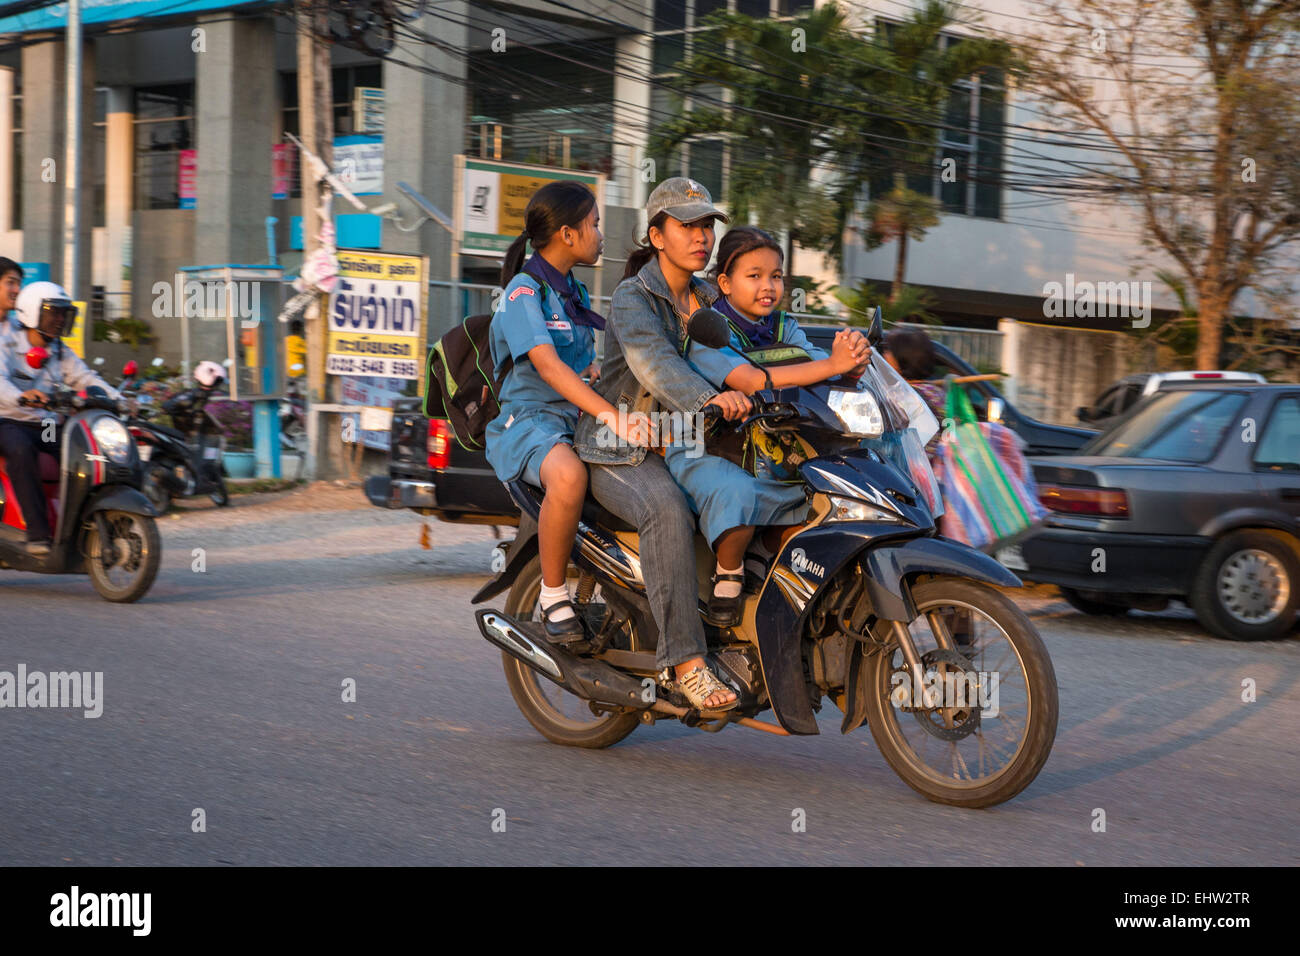 DAILY LIFE IN THAILAND, SOUTHEAST ASIA - Stock Image